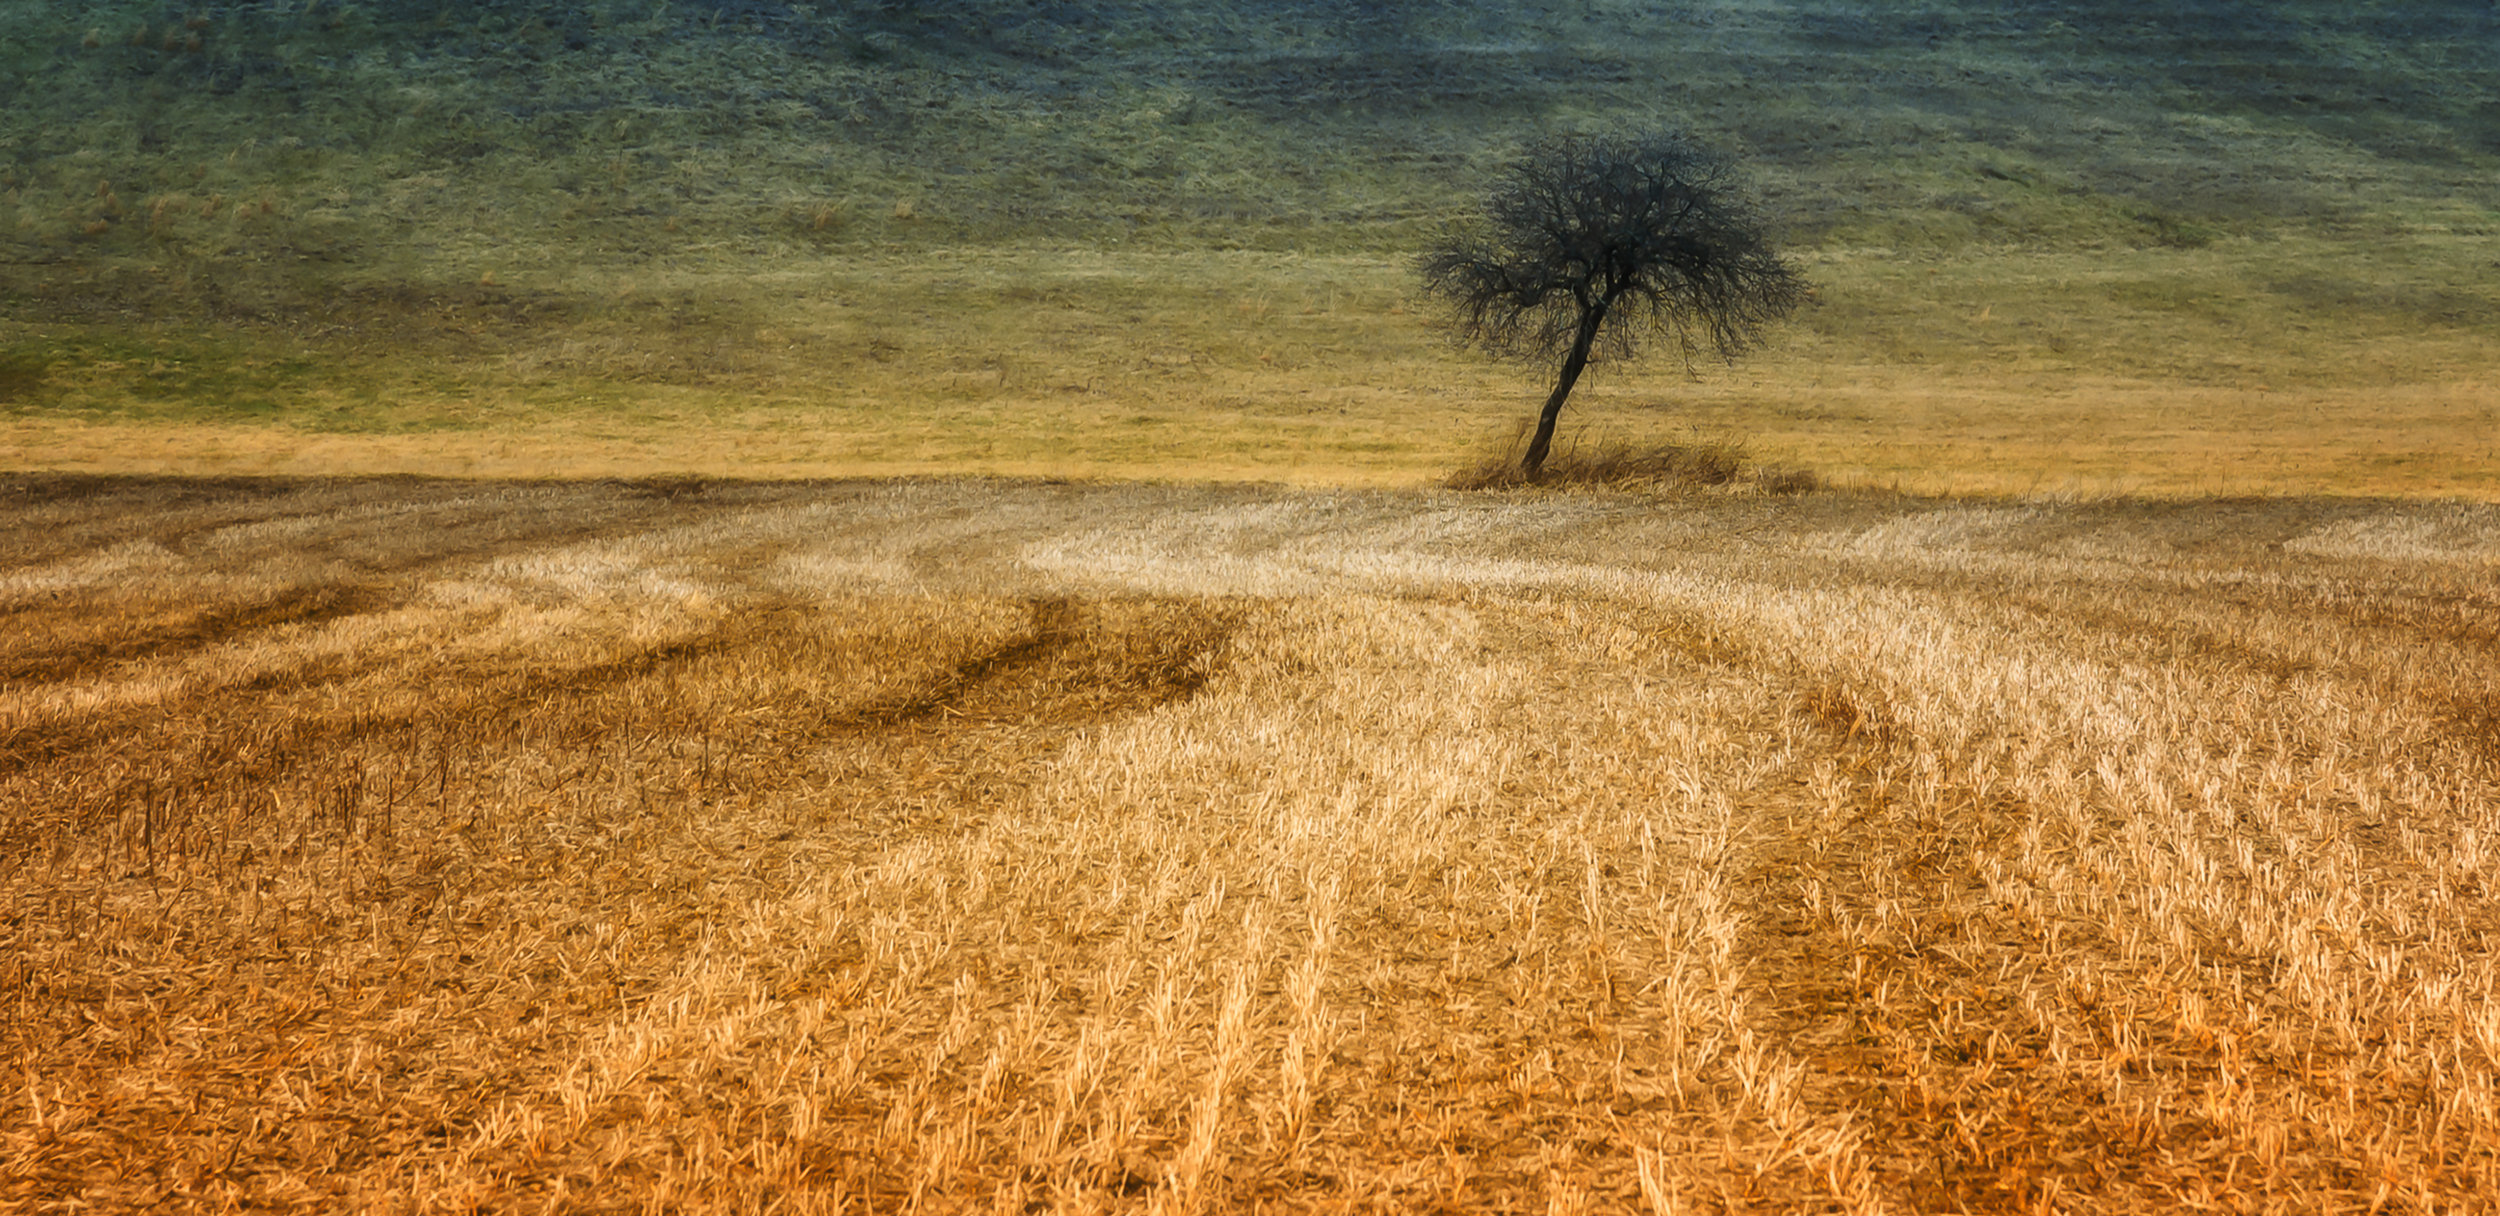 Field in March - Nikon D750, 1/320 @ f/10, ISO100, 120mm. Added a texture and bi-color filter in post to create a more compelling image. I have a thing for lone trees. This photo is one of my personal favorites.